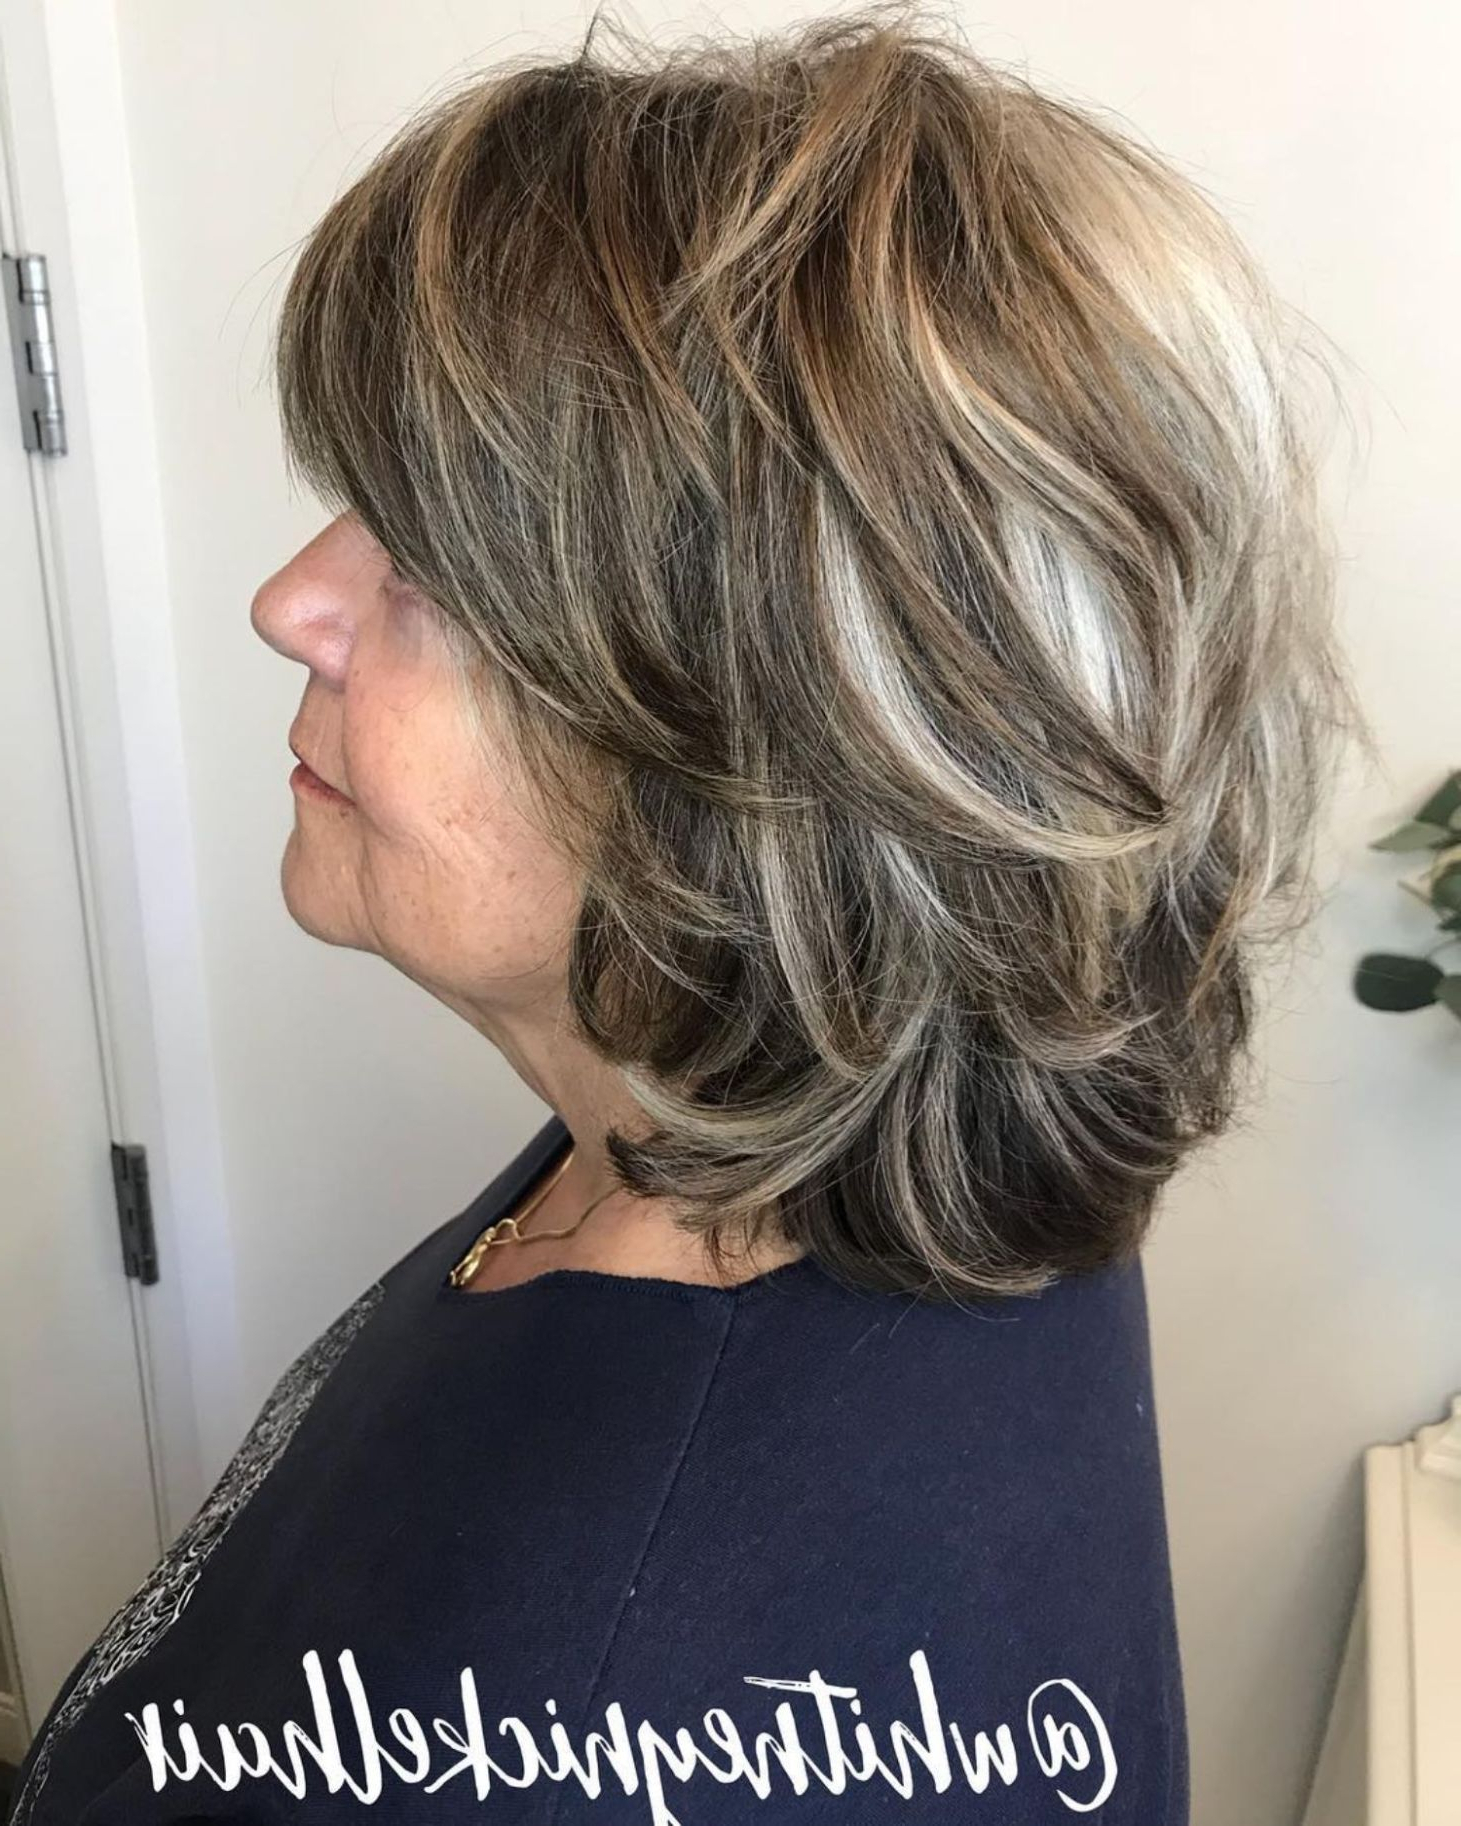 80 Best Modern Hairstyles And Haircuts For Women Over 50 In Regarding Fashionable Medium Piece Y Feathered Haircuts (View 2 of 20)